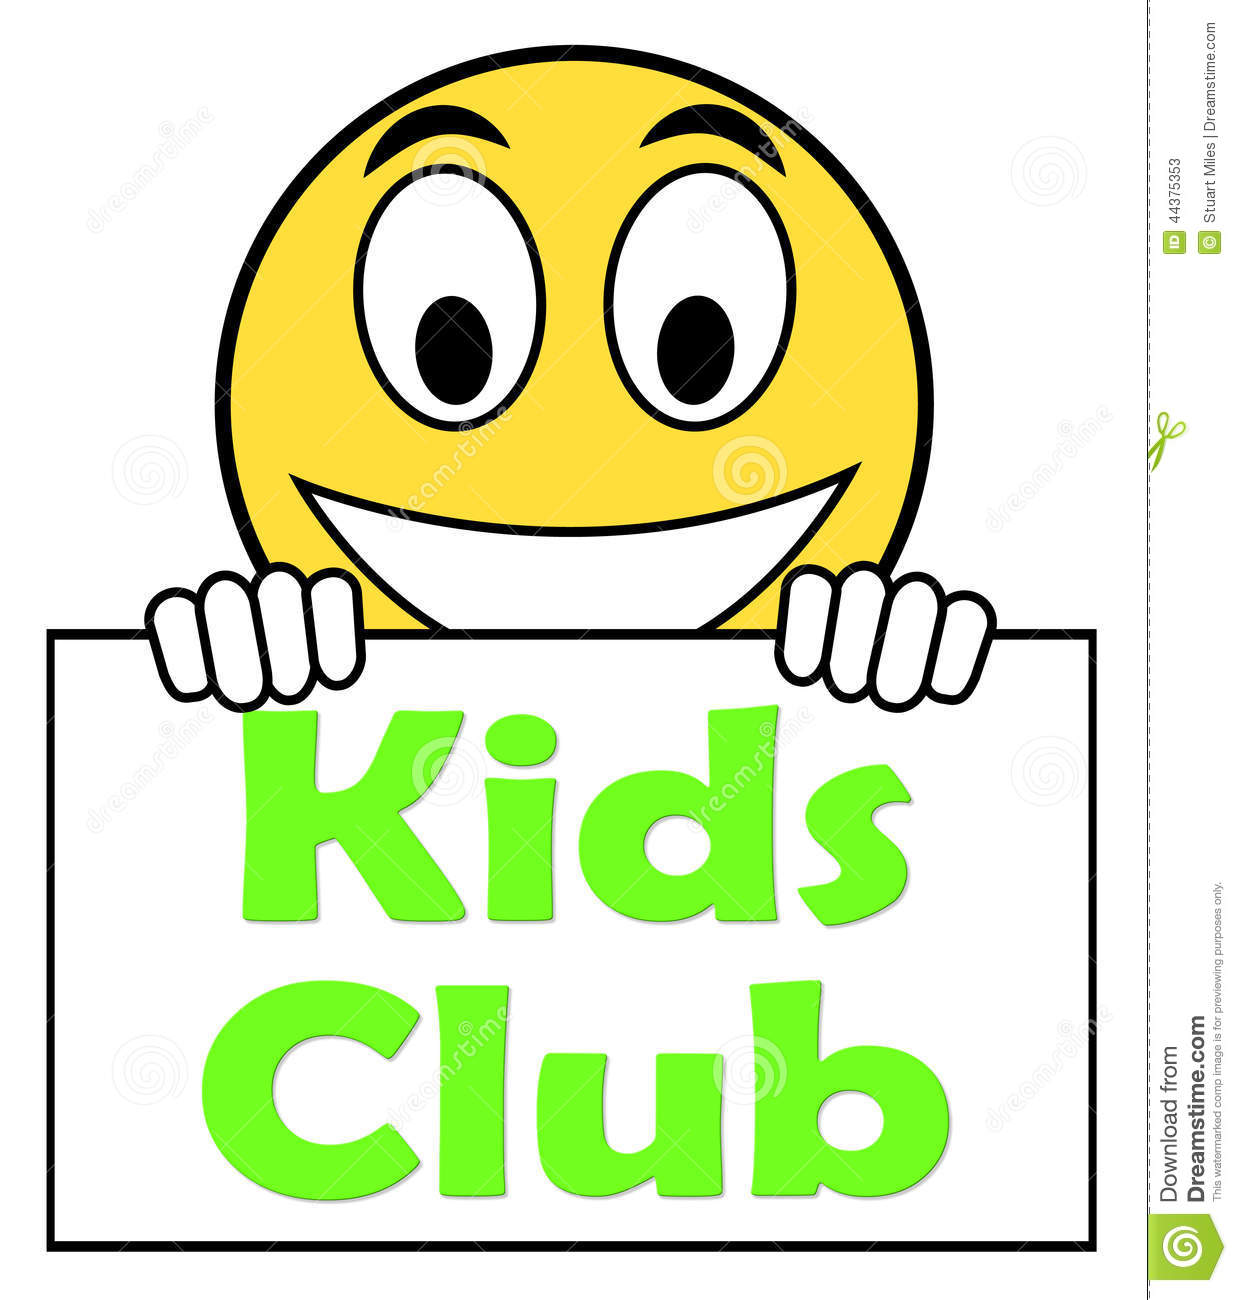 Kids Club On Sign Means Children's Activities Stock Illustration.